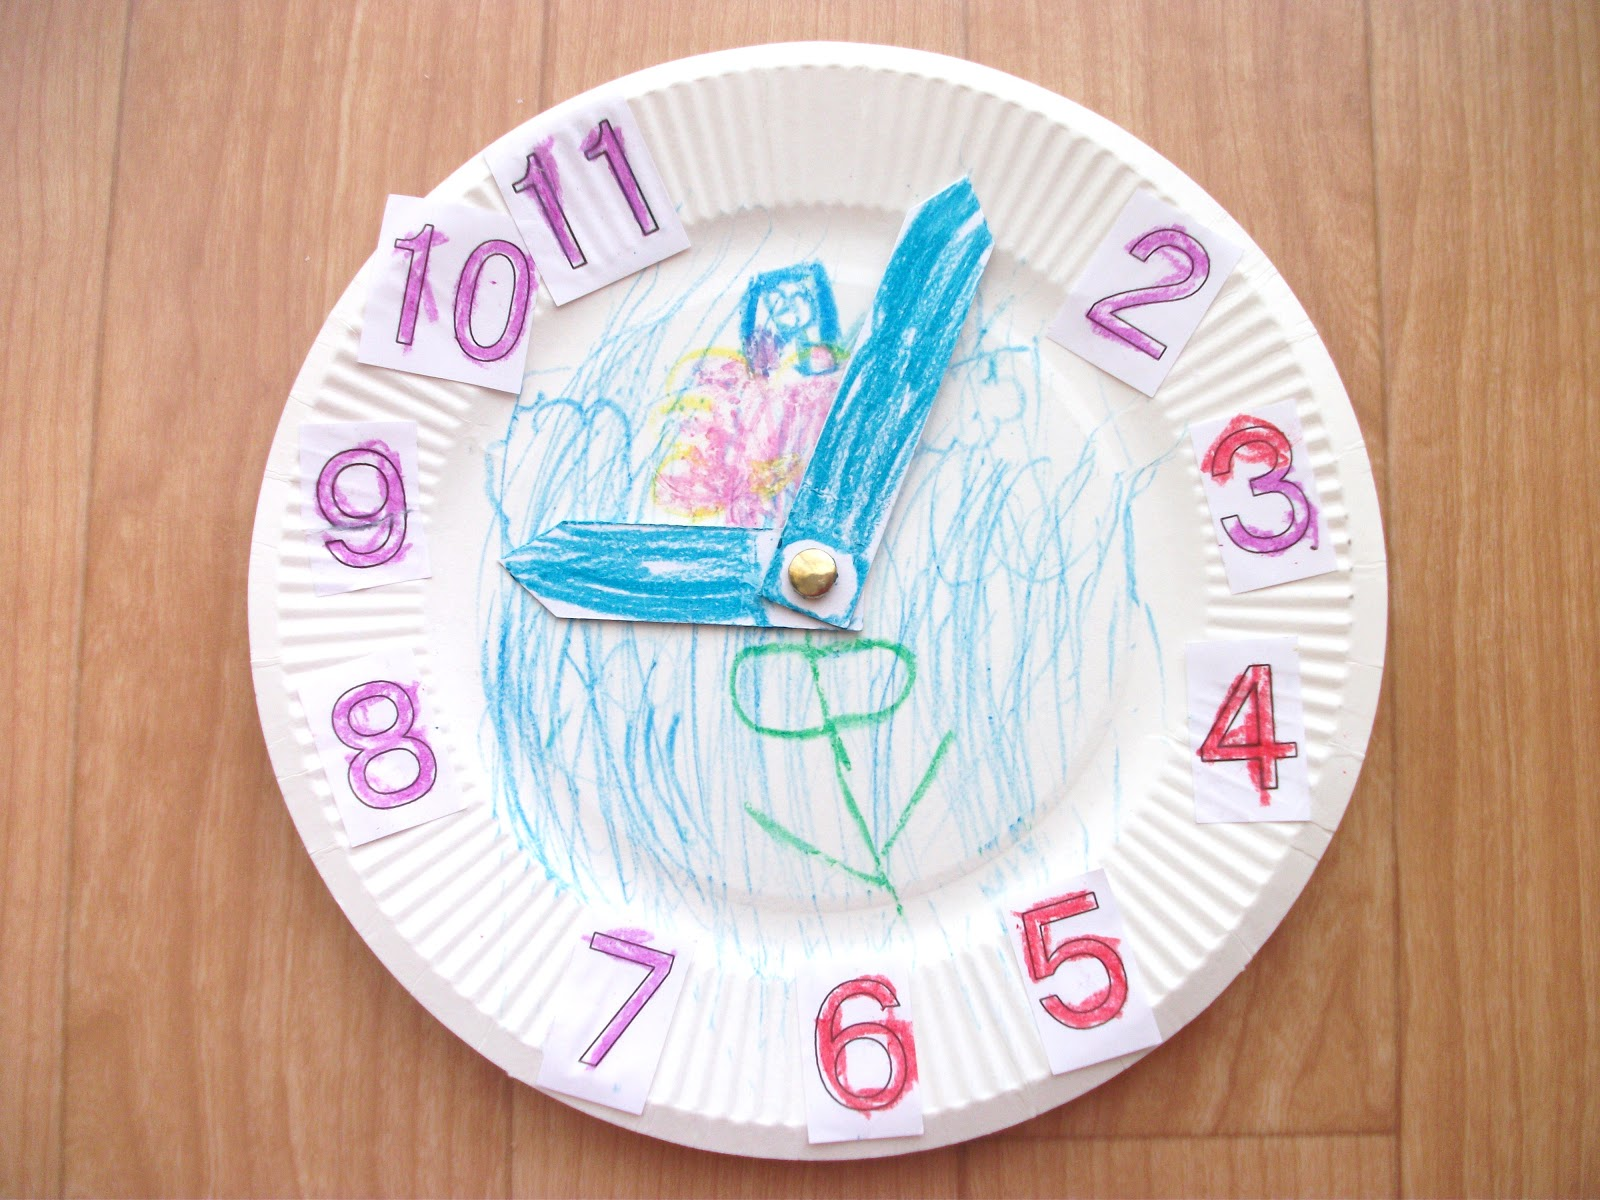 Worksheet Preschool Clock Activities worksheet preschool clock activities mikyu free hickory dickory dock nursery rhyme crafts pre k craft